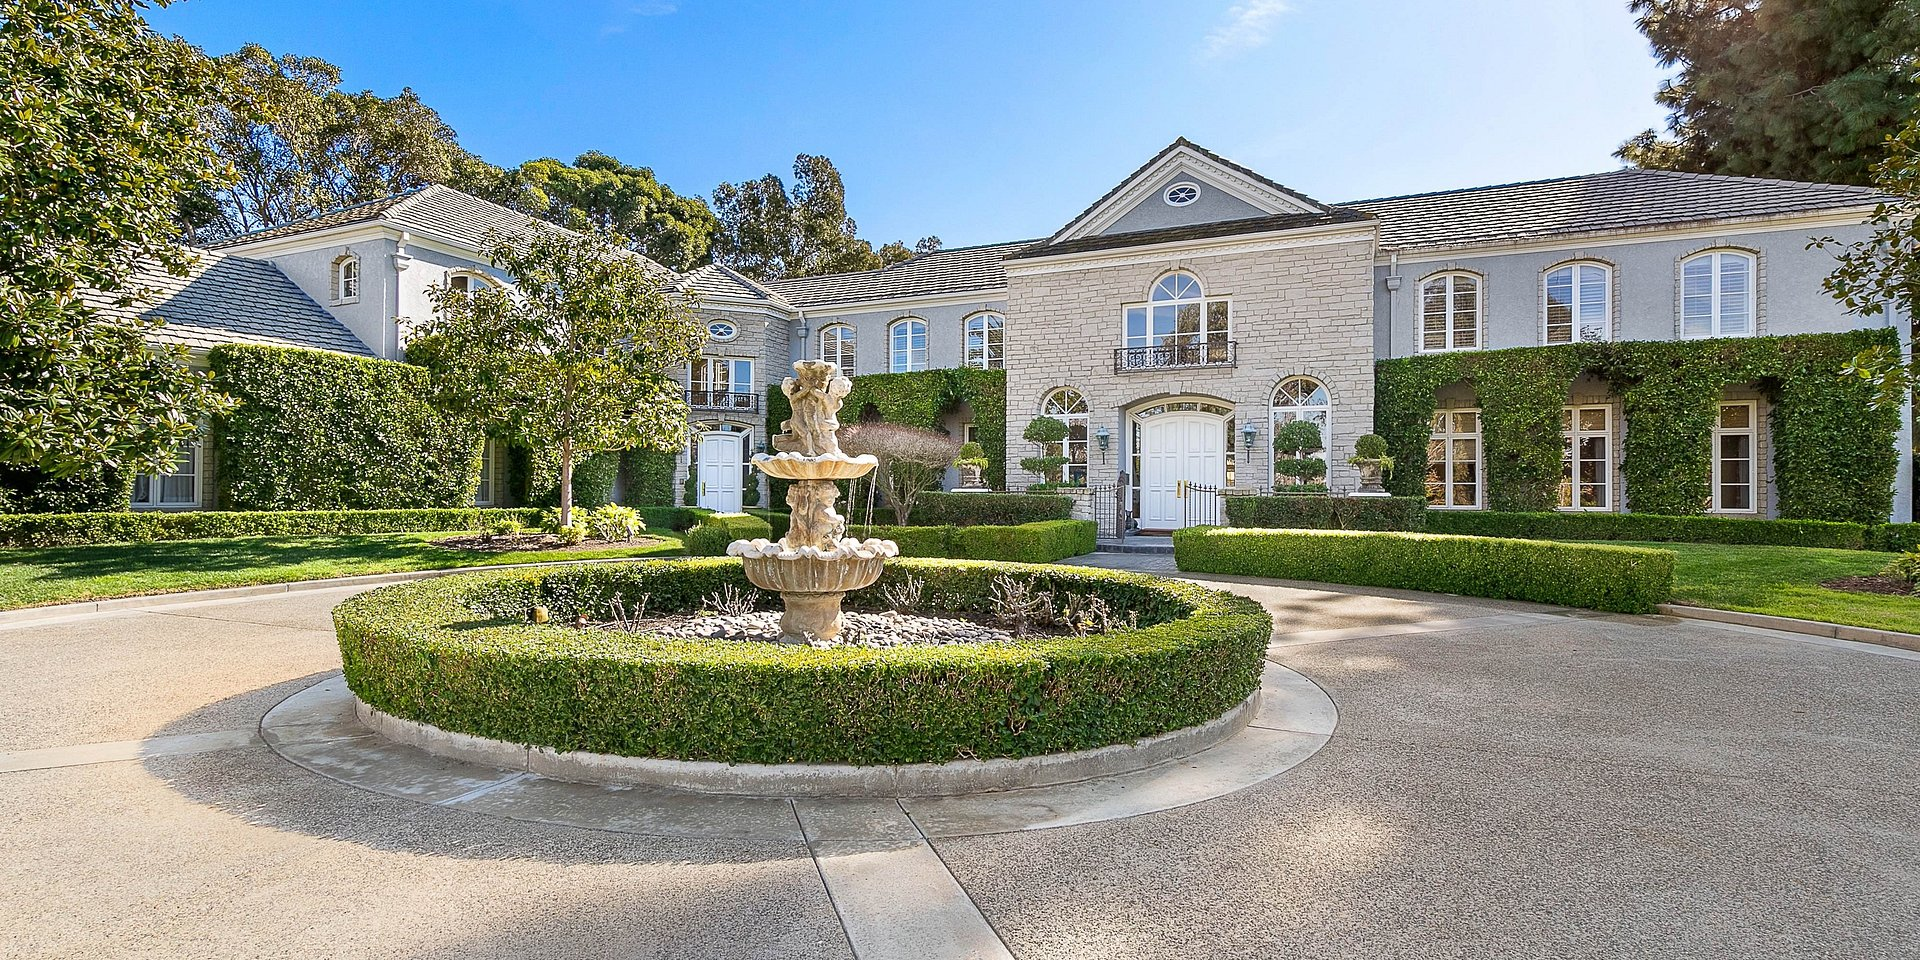 Coldwell Banker Realty Lists a Rancho Santa Fe Property for $4.8 Million